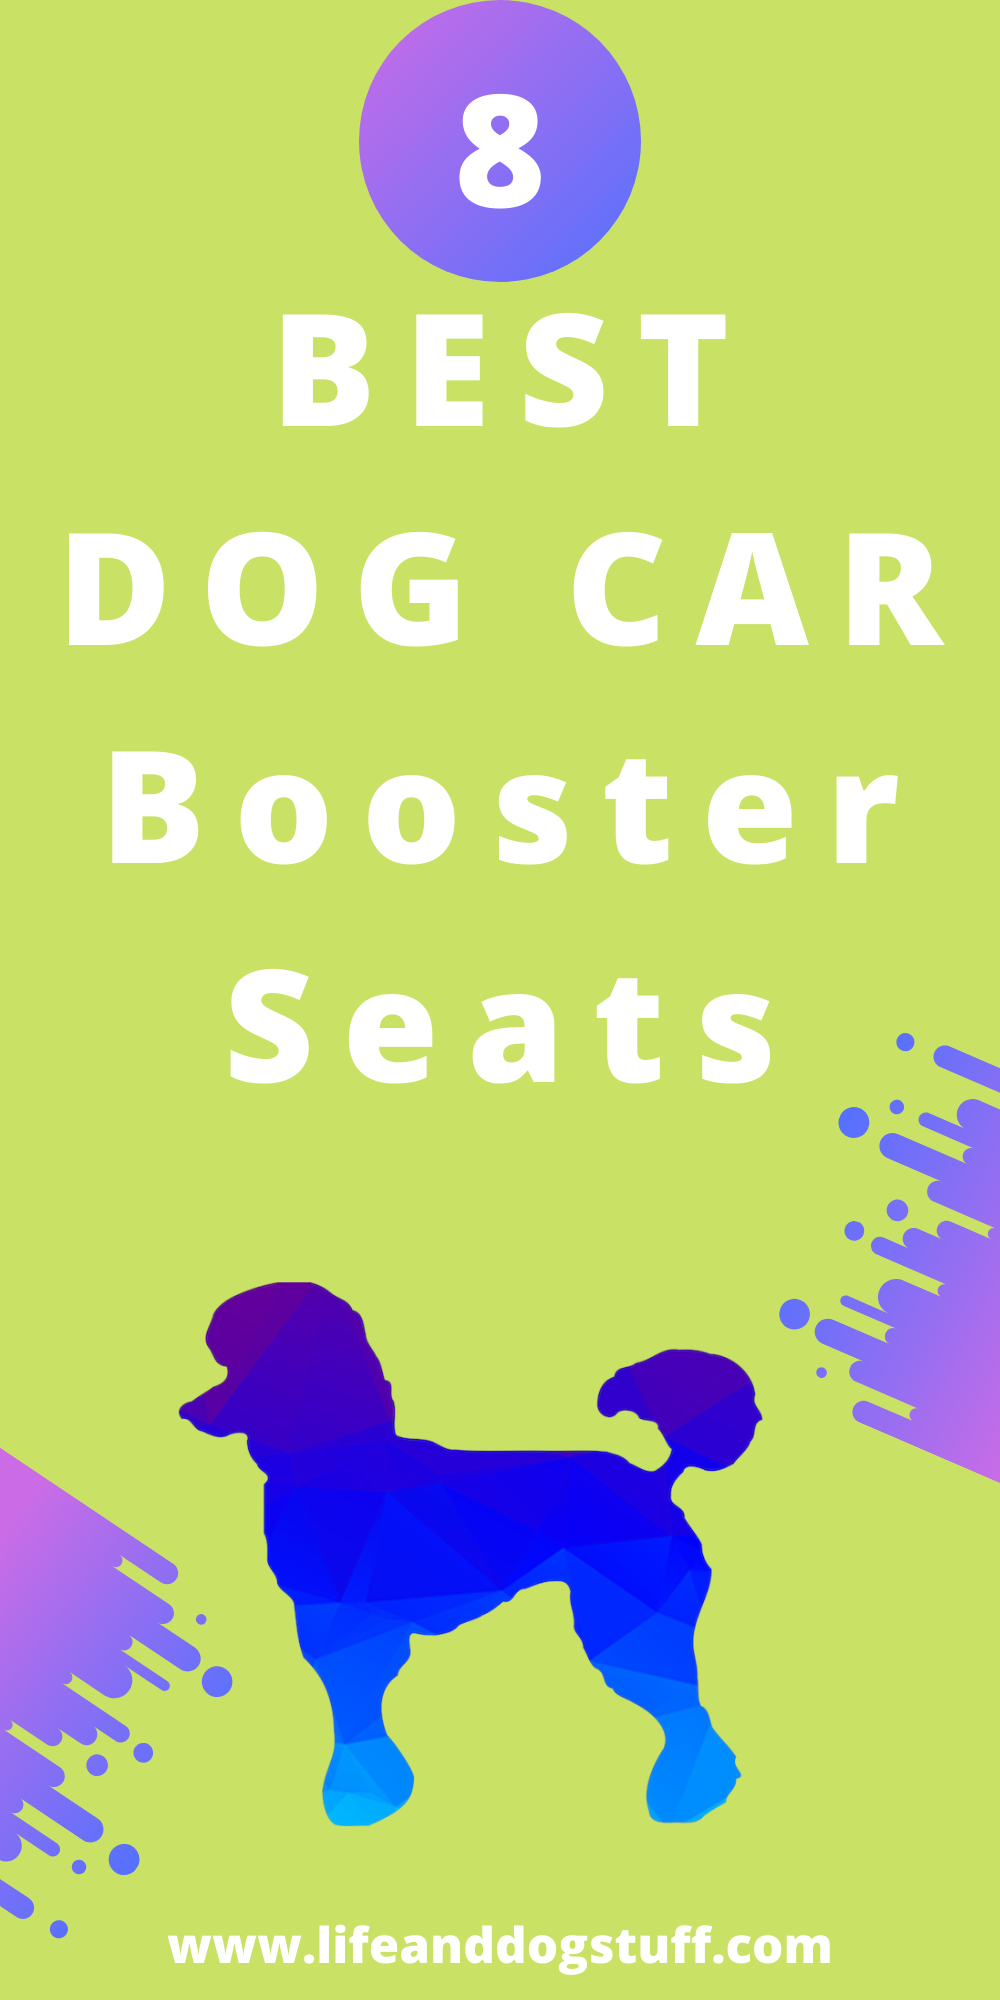 8 Best Dog Car Booster Seats Review Dog Car Booster Seat Dog Car Booster Car Seat